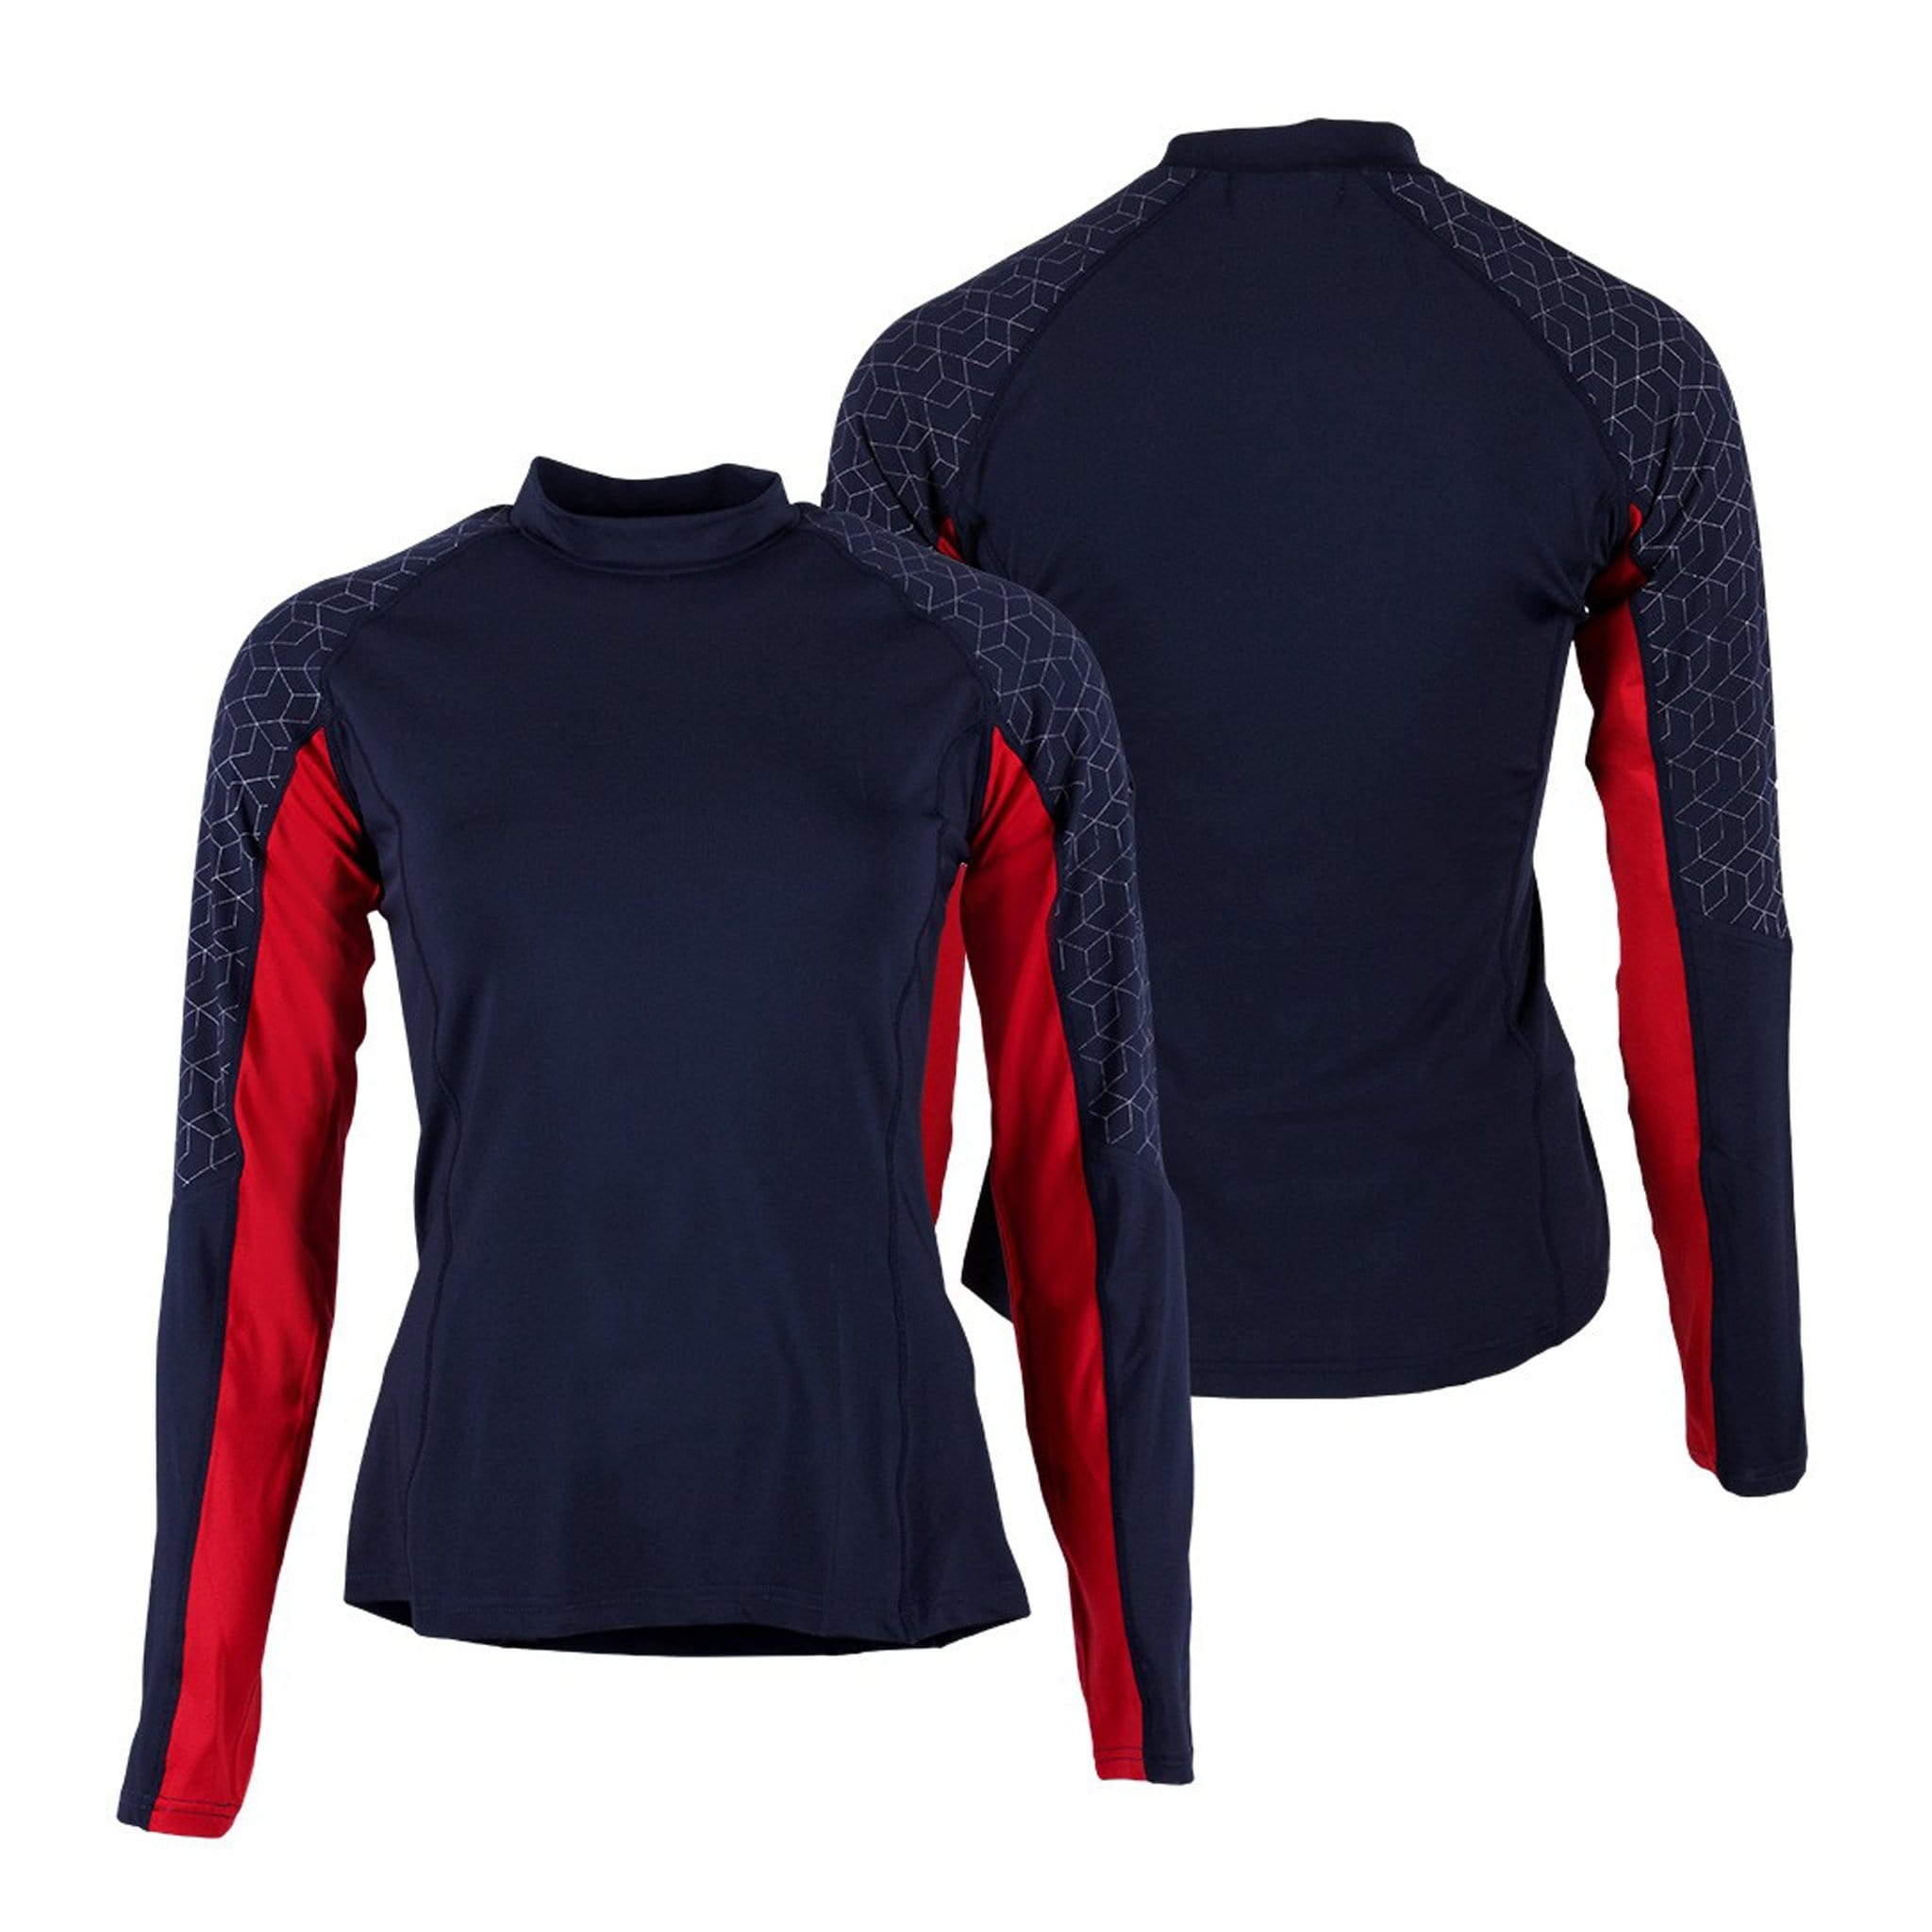 QHP Children's Eldorado Contrast Base Layer 8314 Navy and Red Front and Back